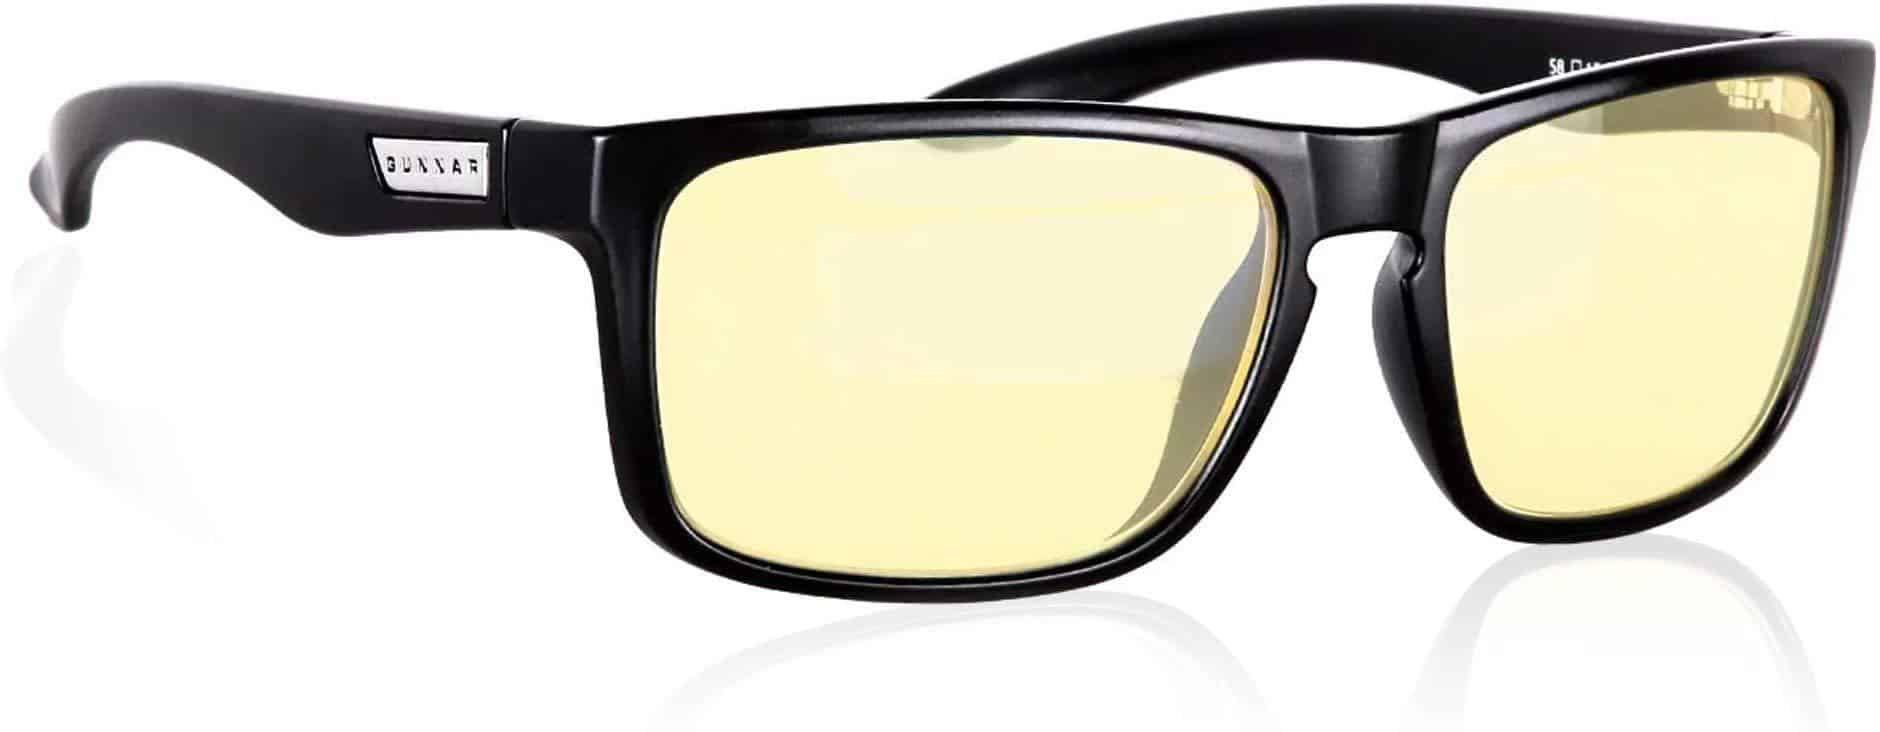 gunnar glasses image